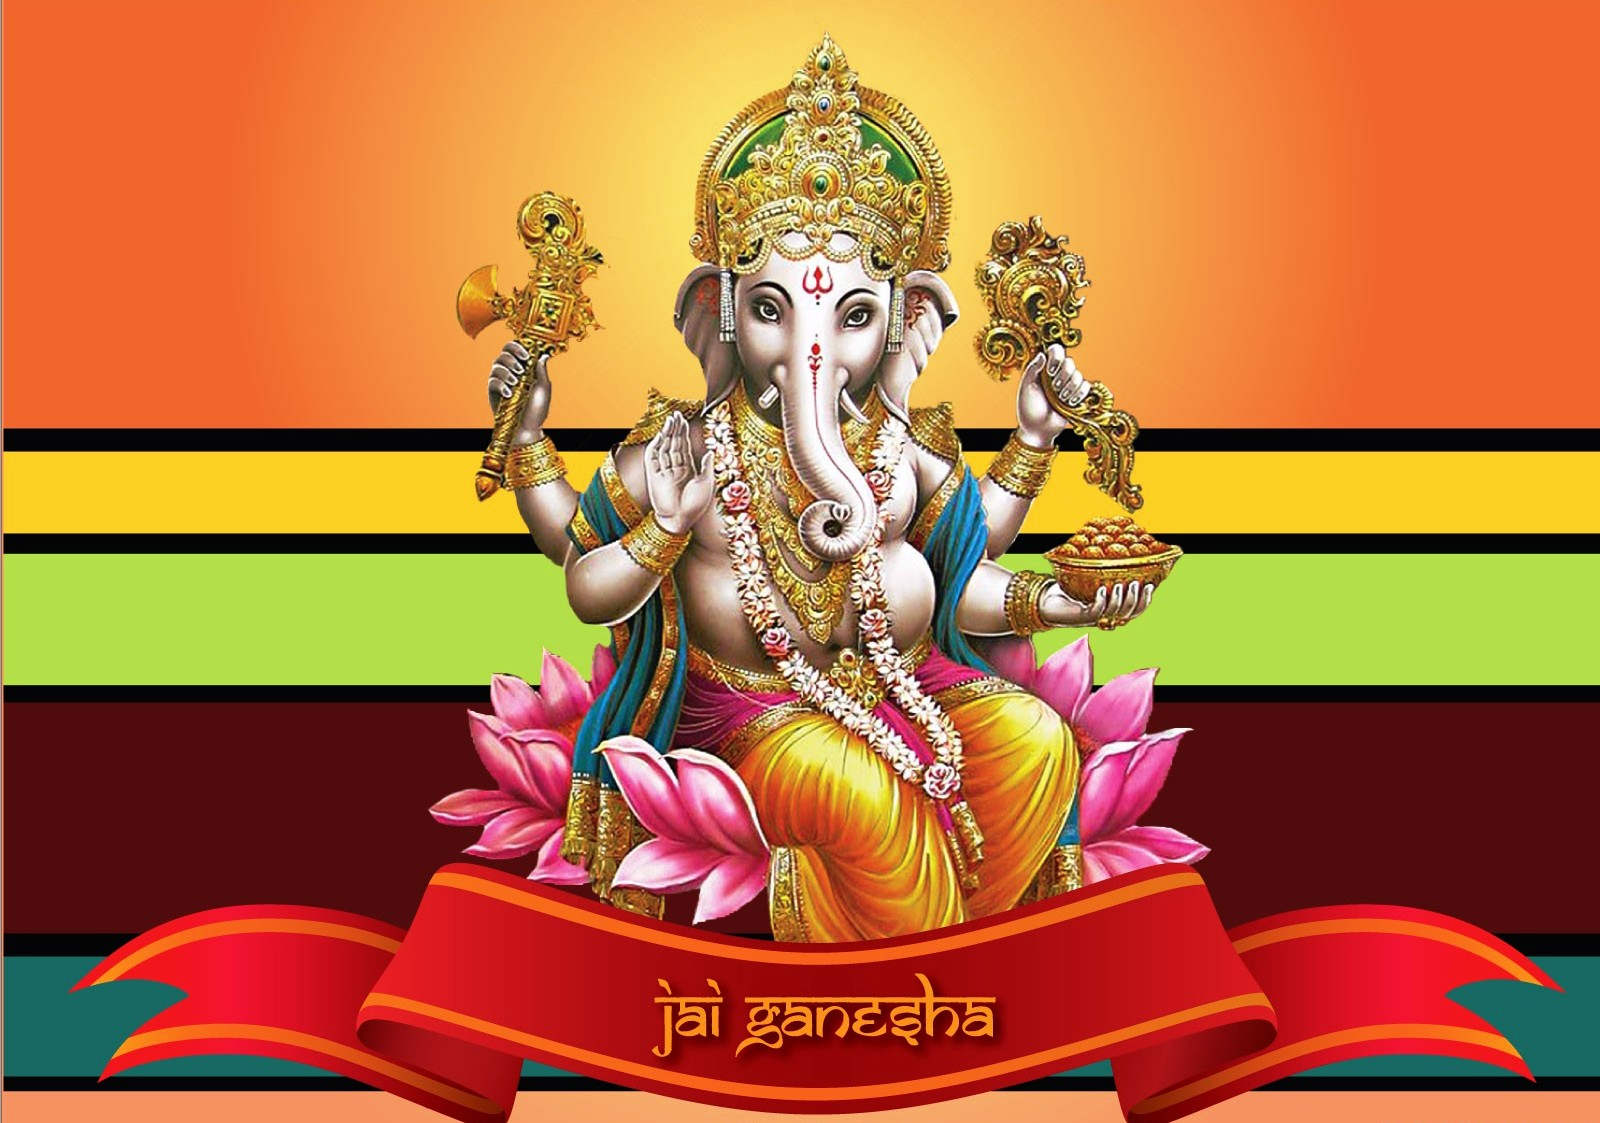 jai shri ganesha hd wallpapers fun infosyte